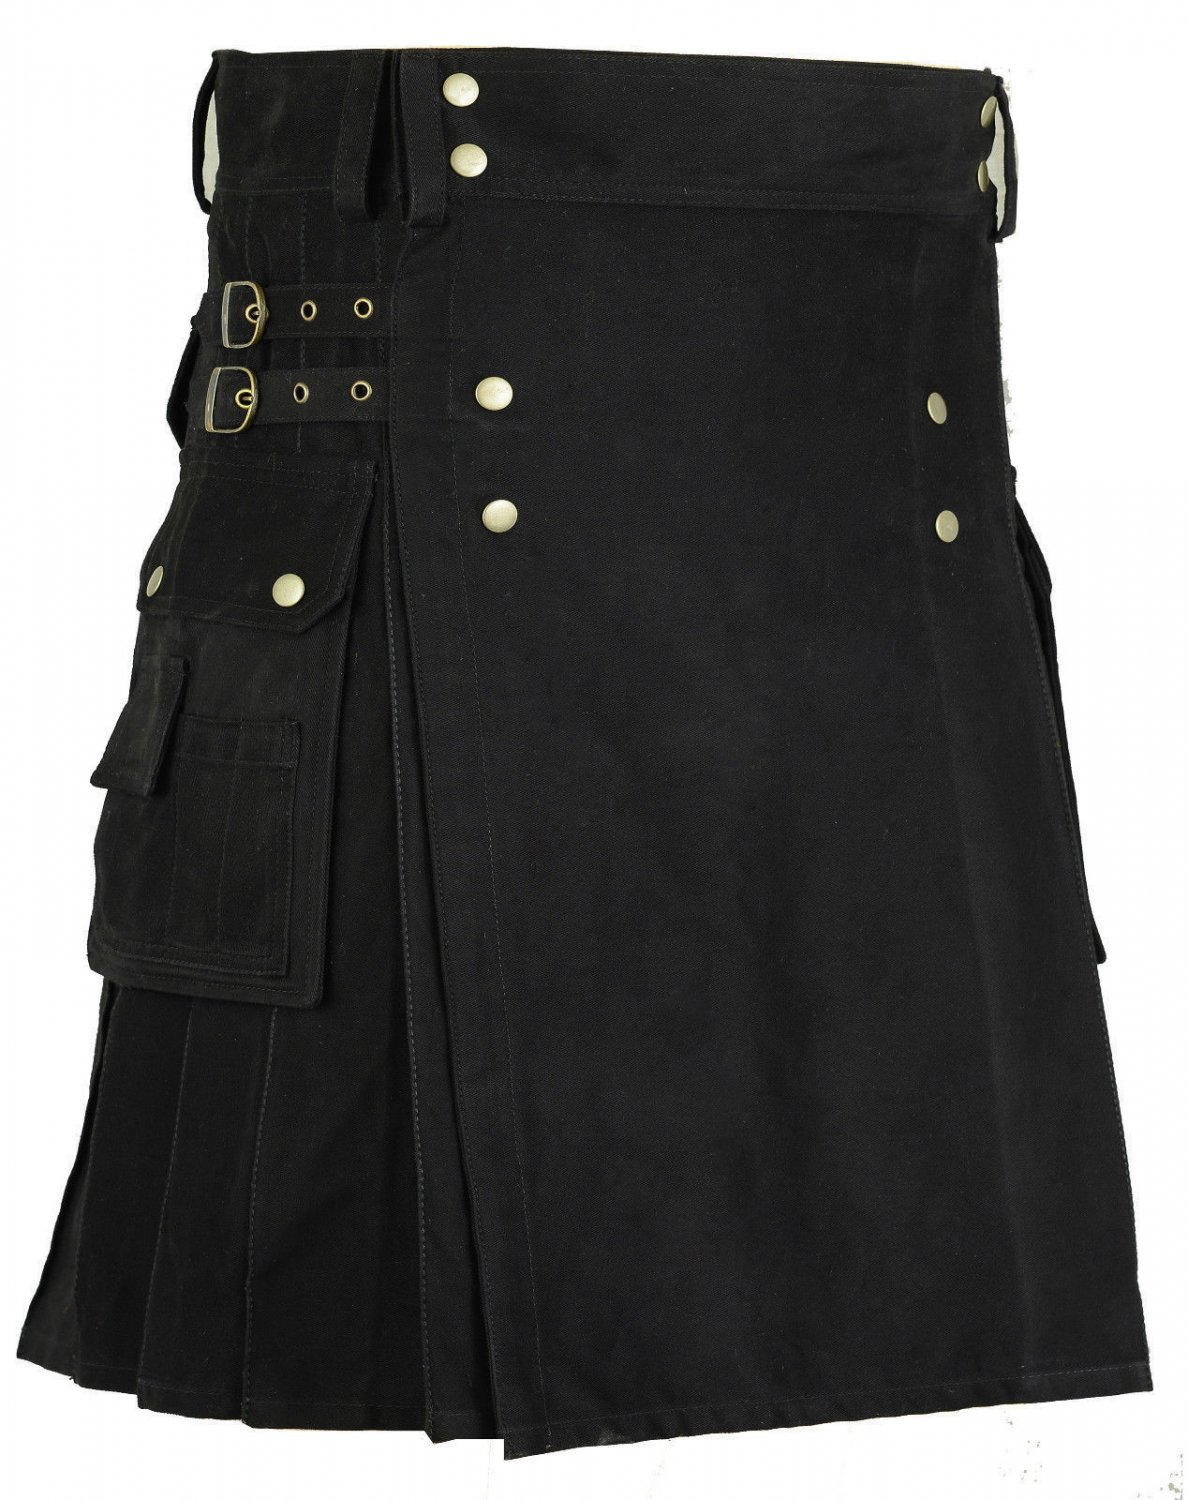 Gothic Black Cotton Outdoor Kilt for Men 36 Size Utility Kilt with Brass Material